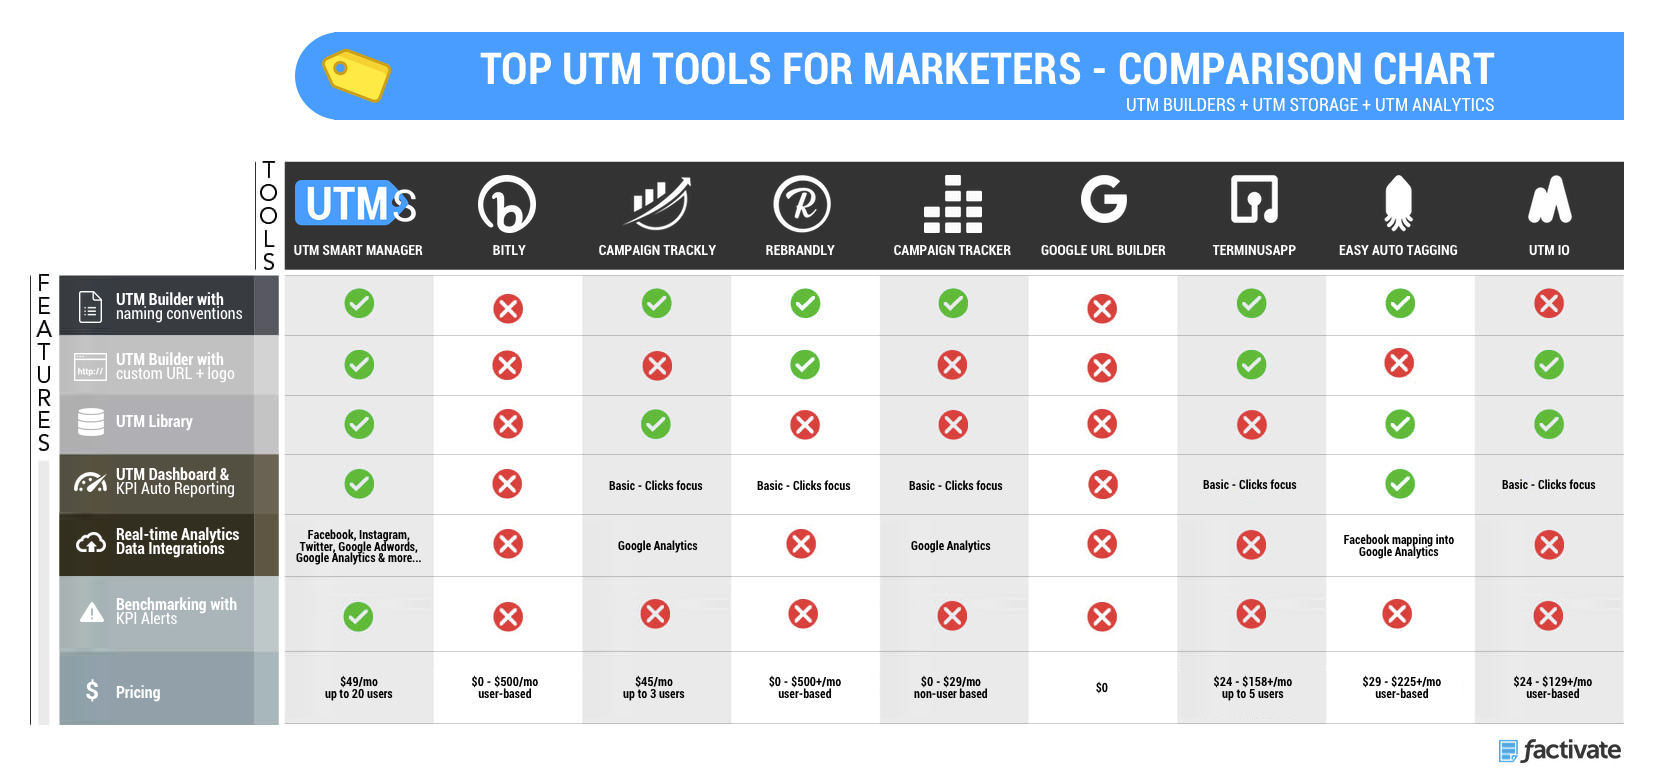 best utm builders for marketers comparison chart